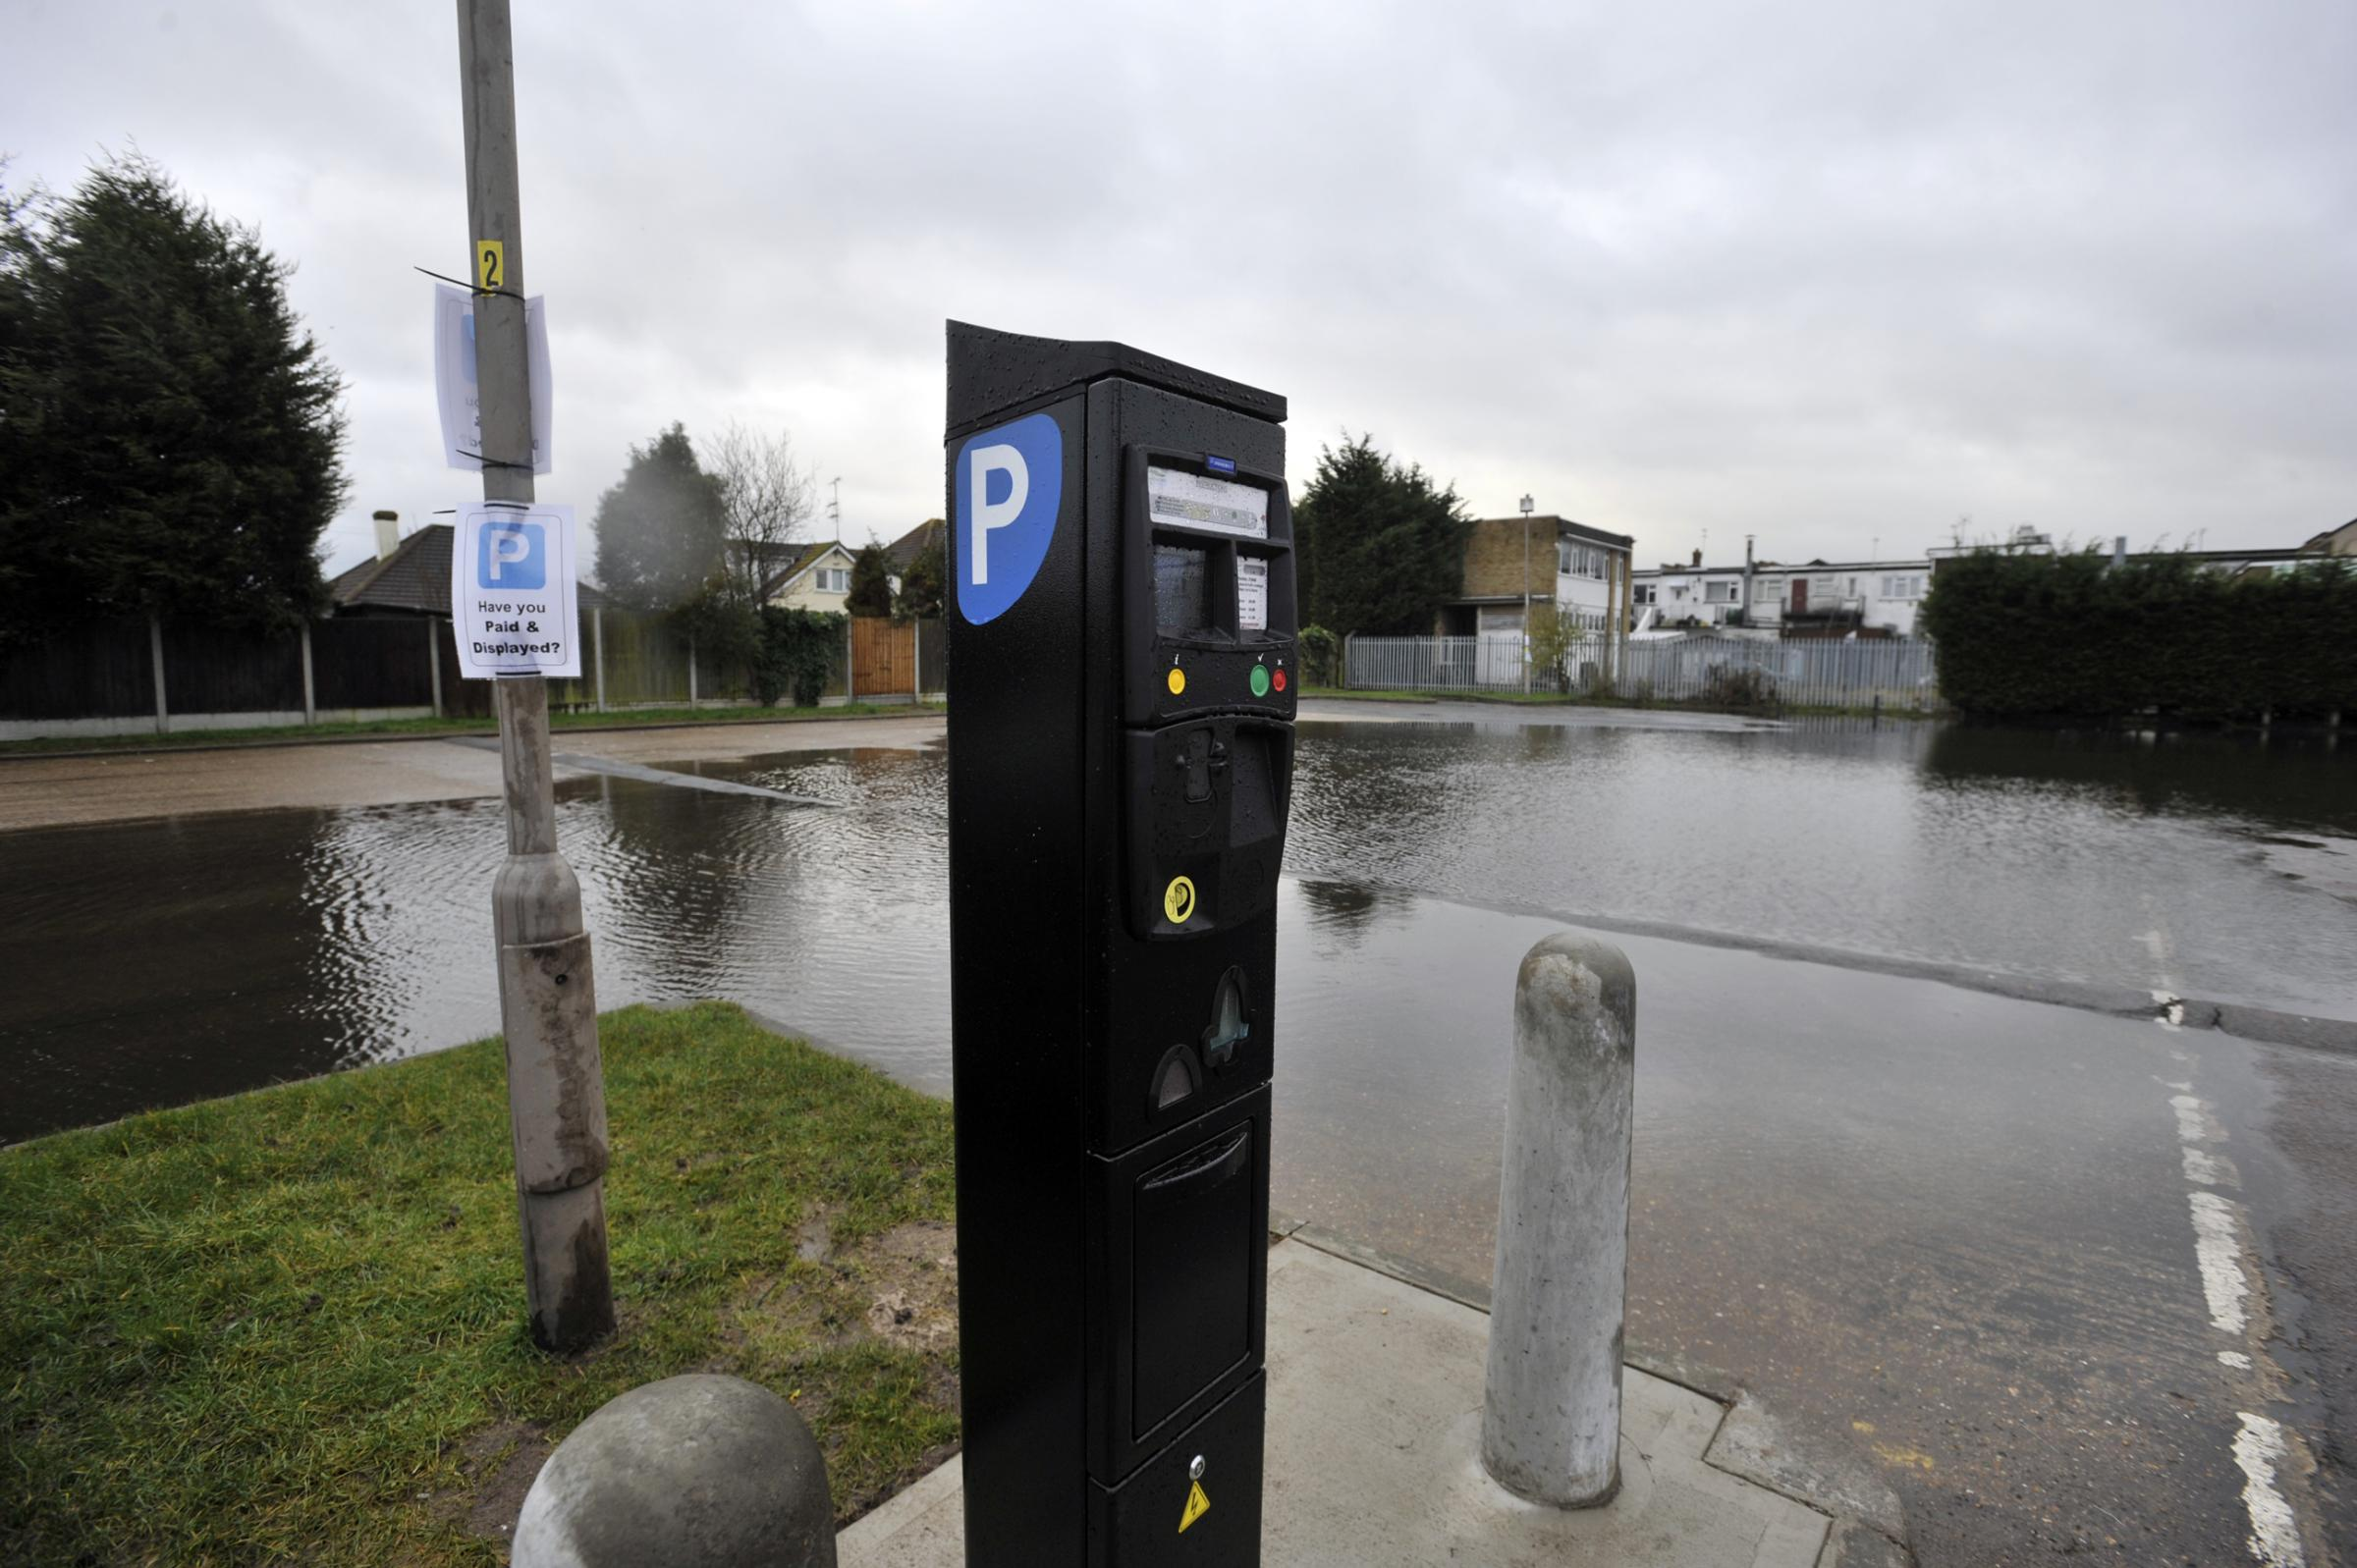 New charges start at underwater car park: Canvey's Oak Road car park deserted